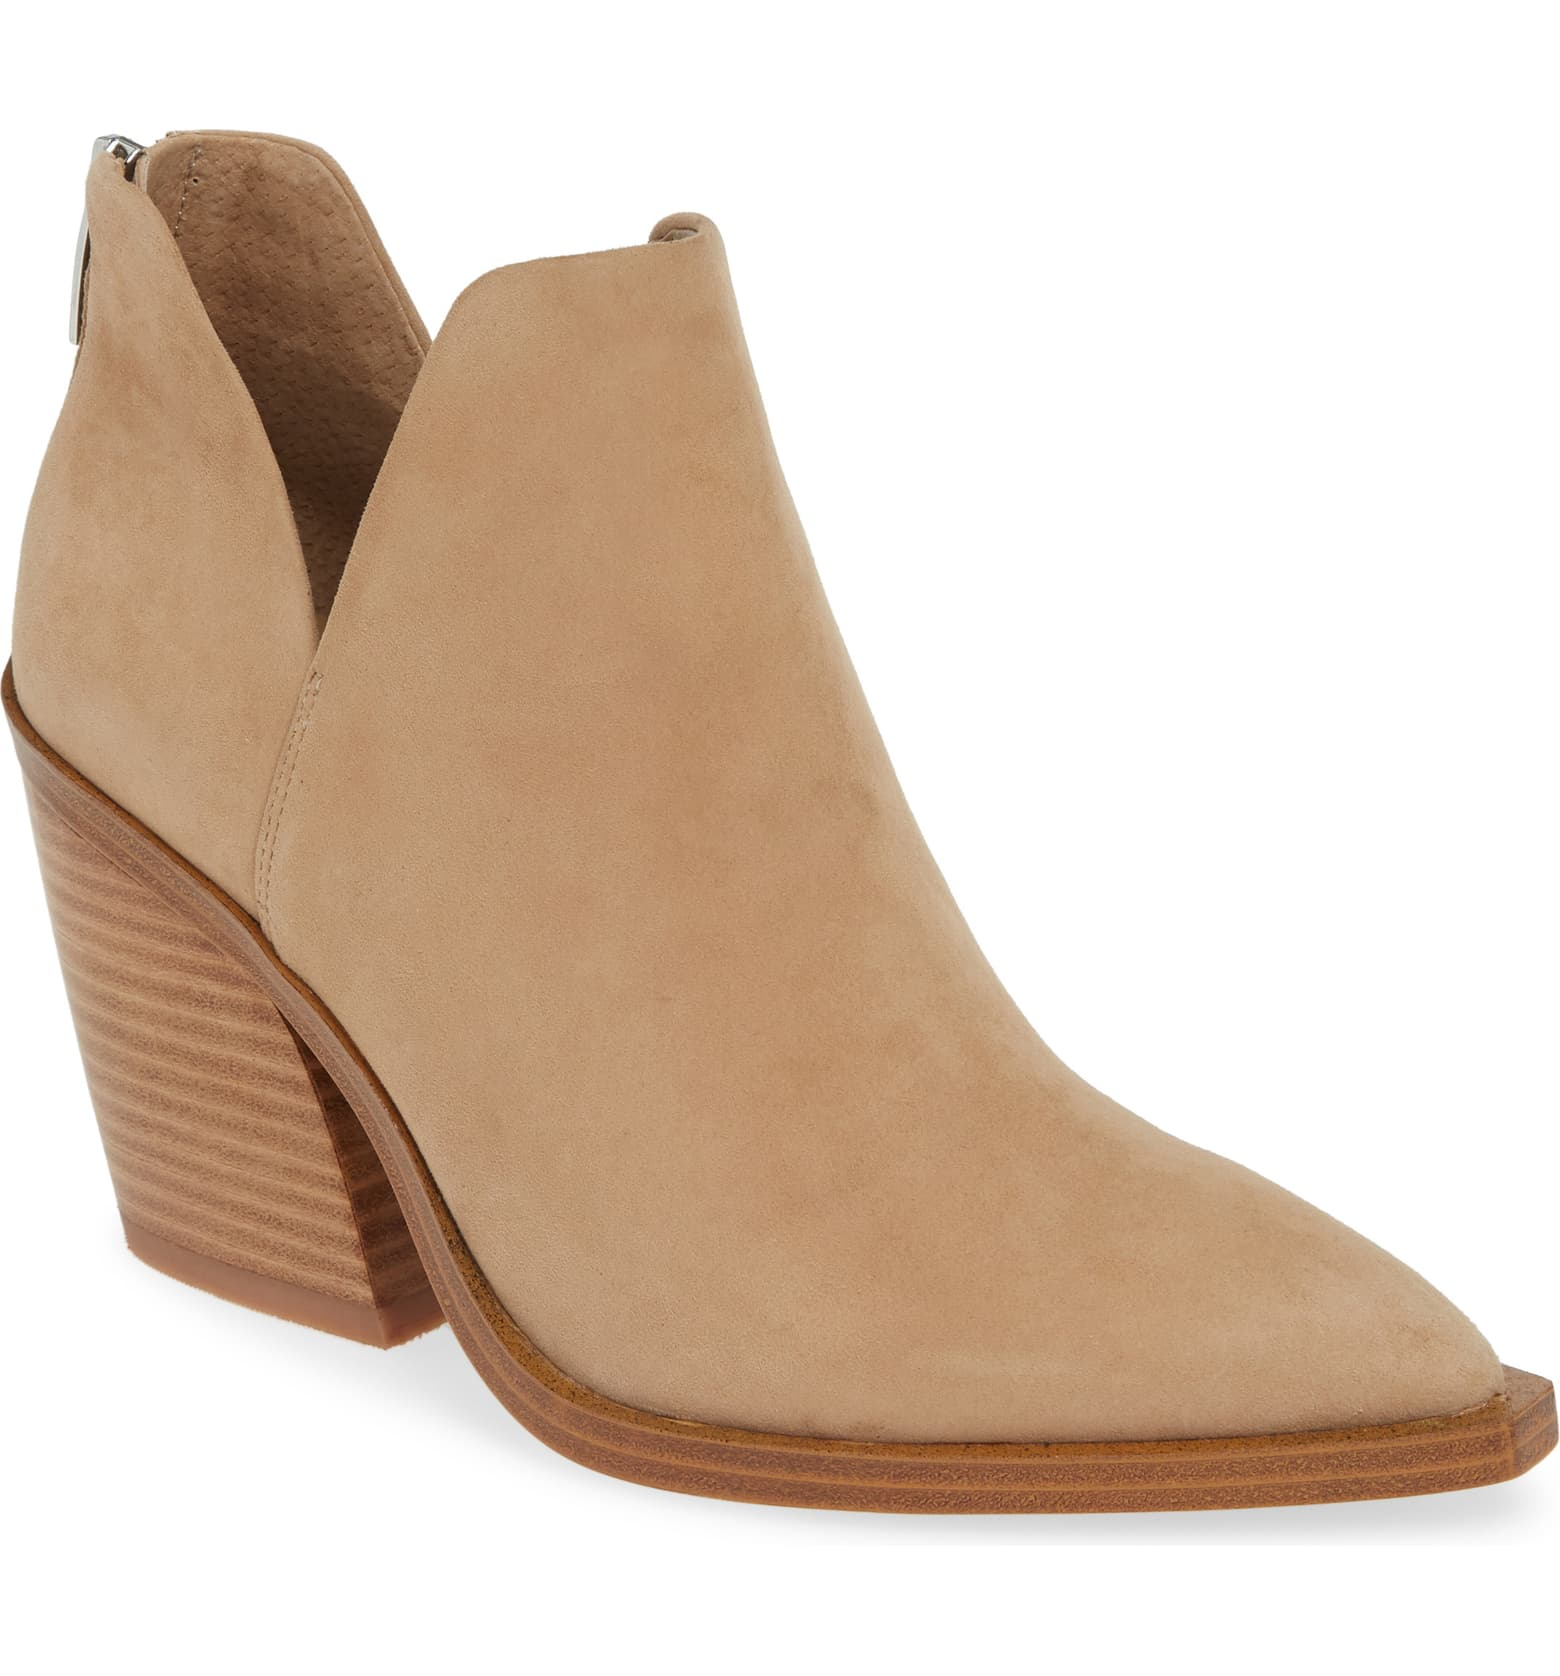 Nordstrom Anniversary Sale - #NSALE - Nordstrom Sale - Fall Fashion - Women's Fashion - Sabby Style-21